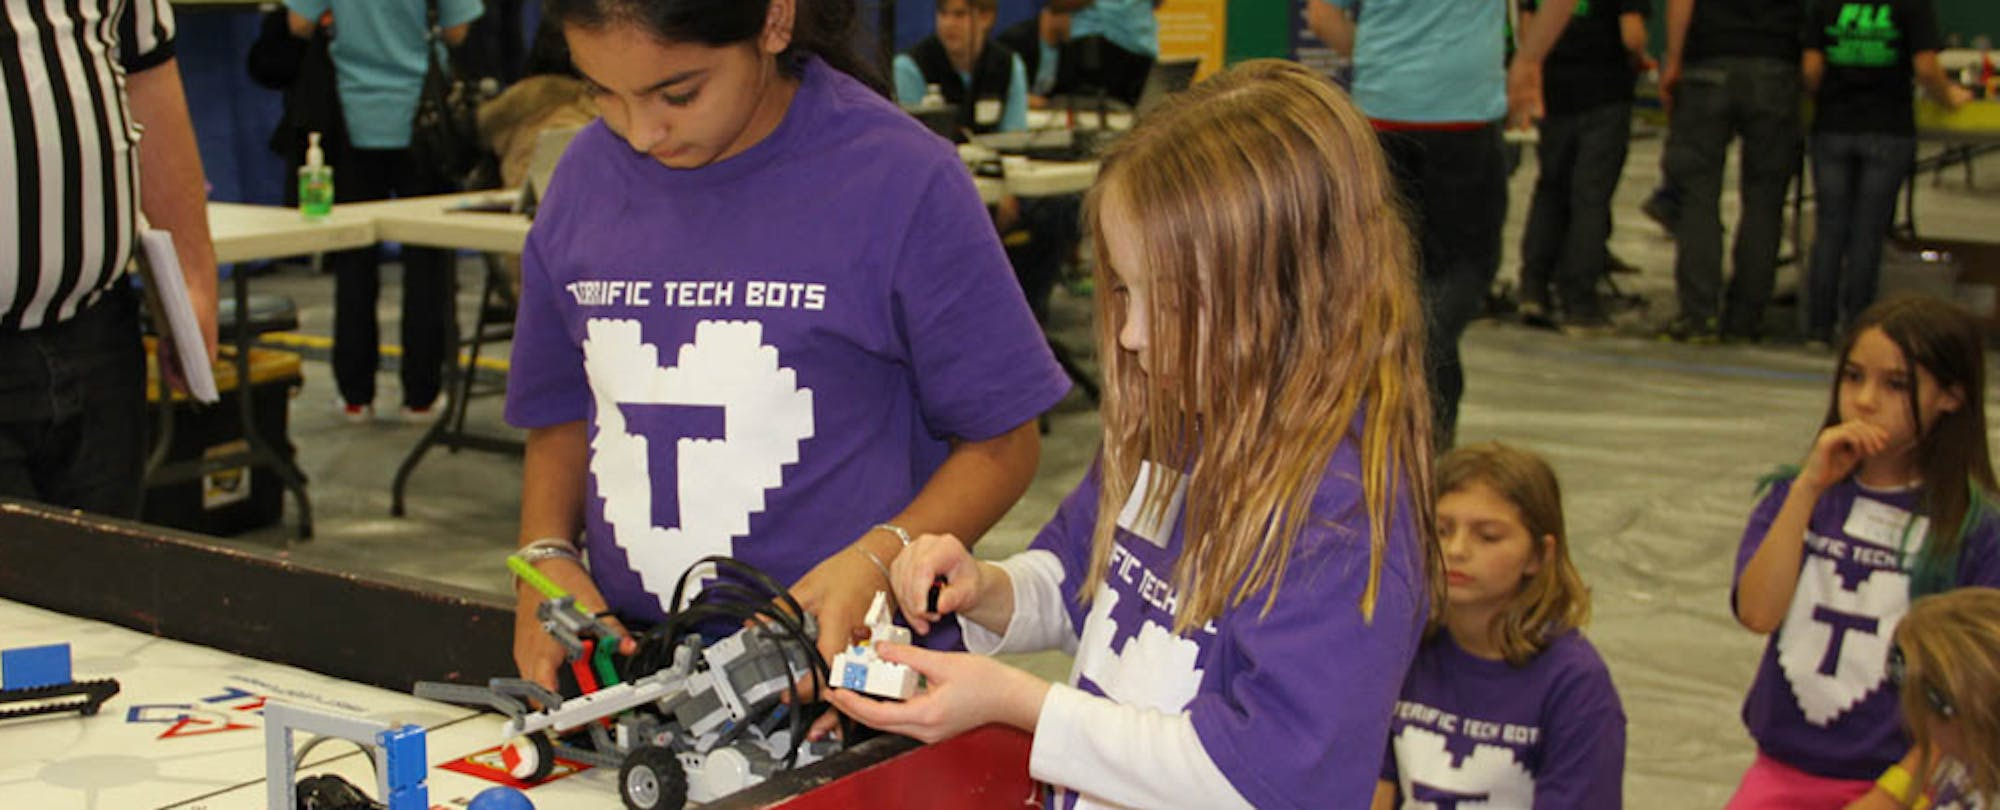 8 Questions to Ask When Designing STEM for Girls